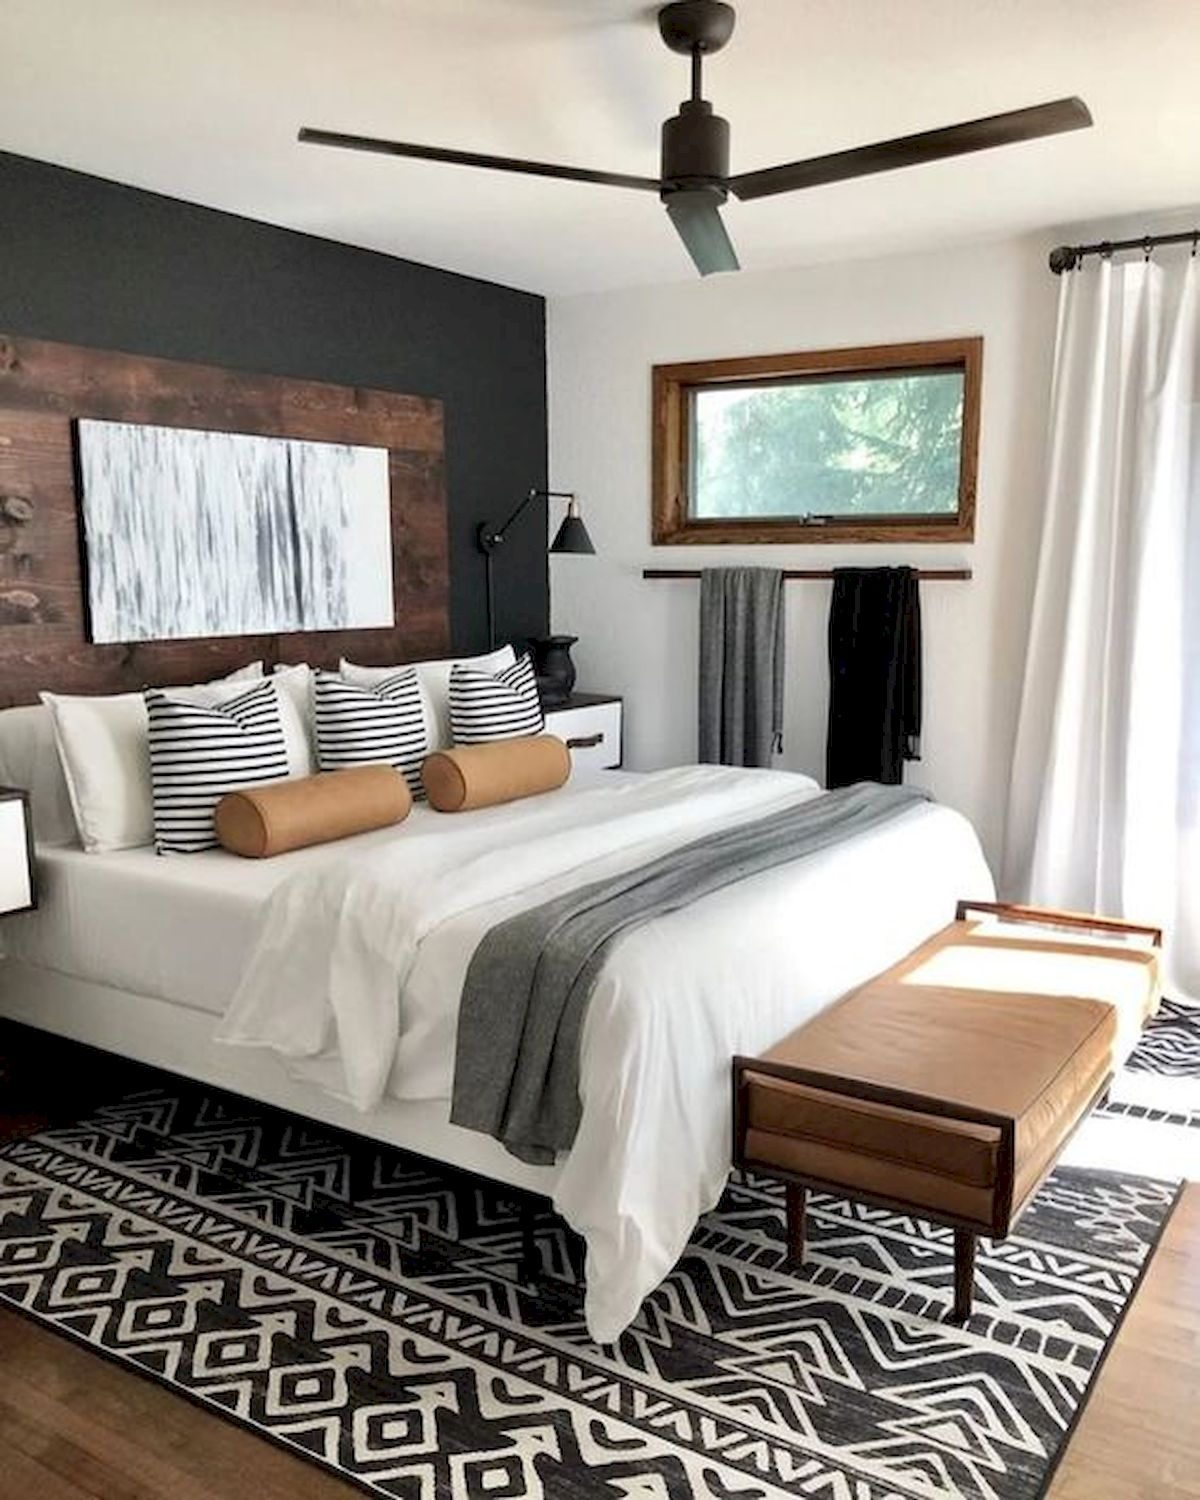 20 Awesome Master Bedroom Design and Decor Ideas (9)